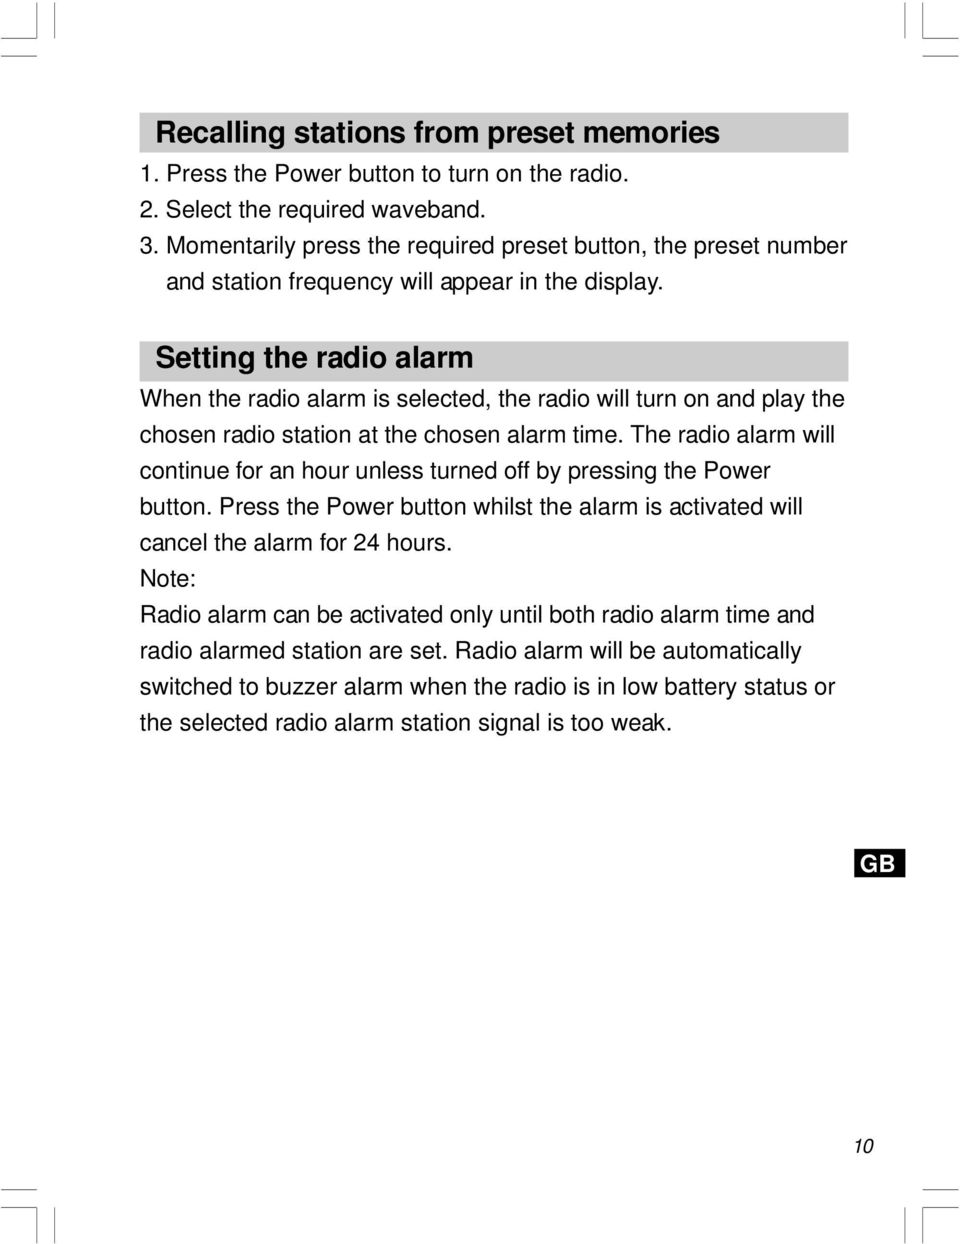 Setting the radio alarm When the radio alarm is selected, the radio will turn on and play the chosen radio station at the chosen alarm time.